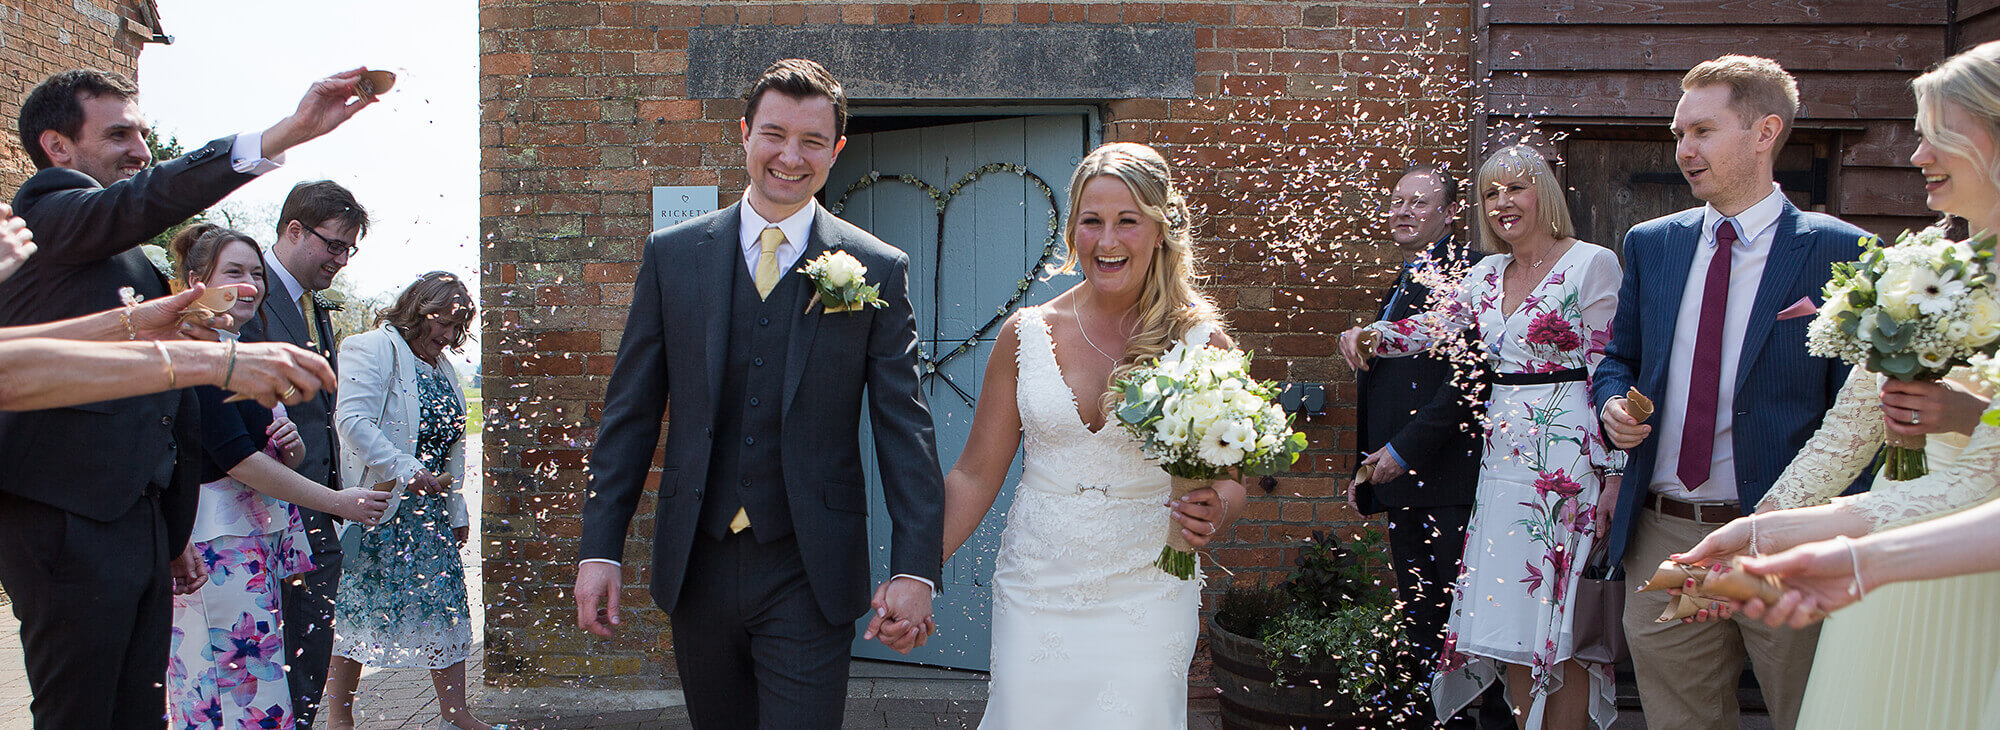 Happy newly married couple smiling after leaving wedding venue